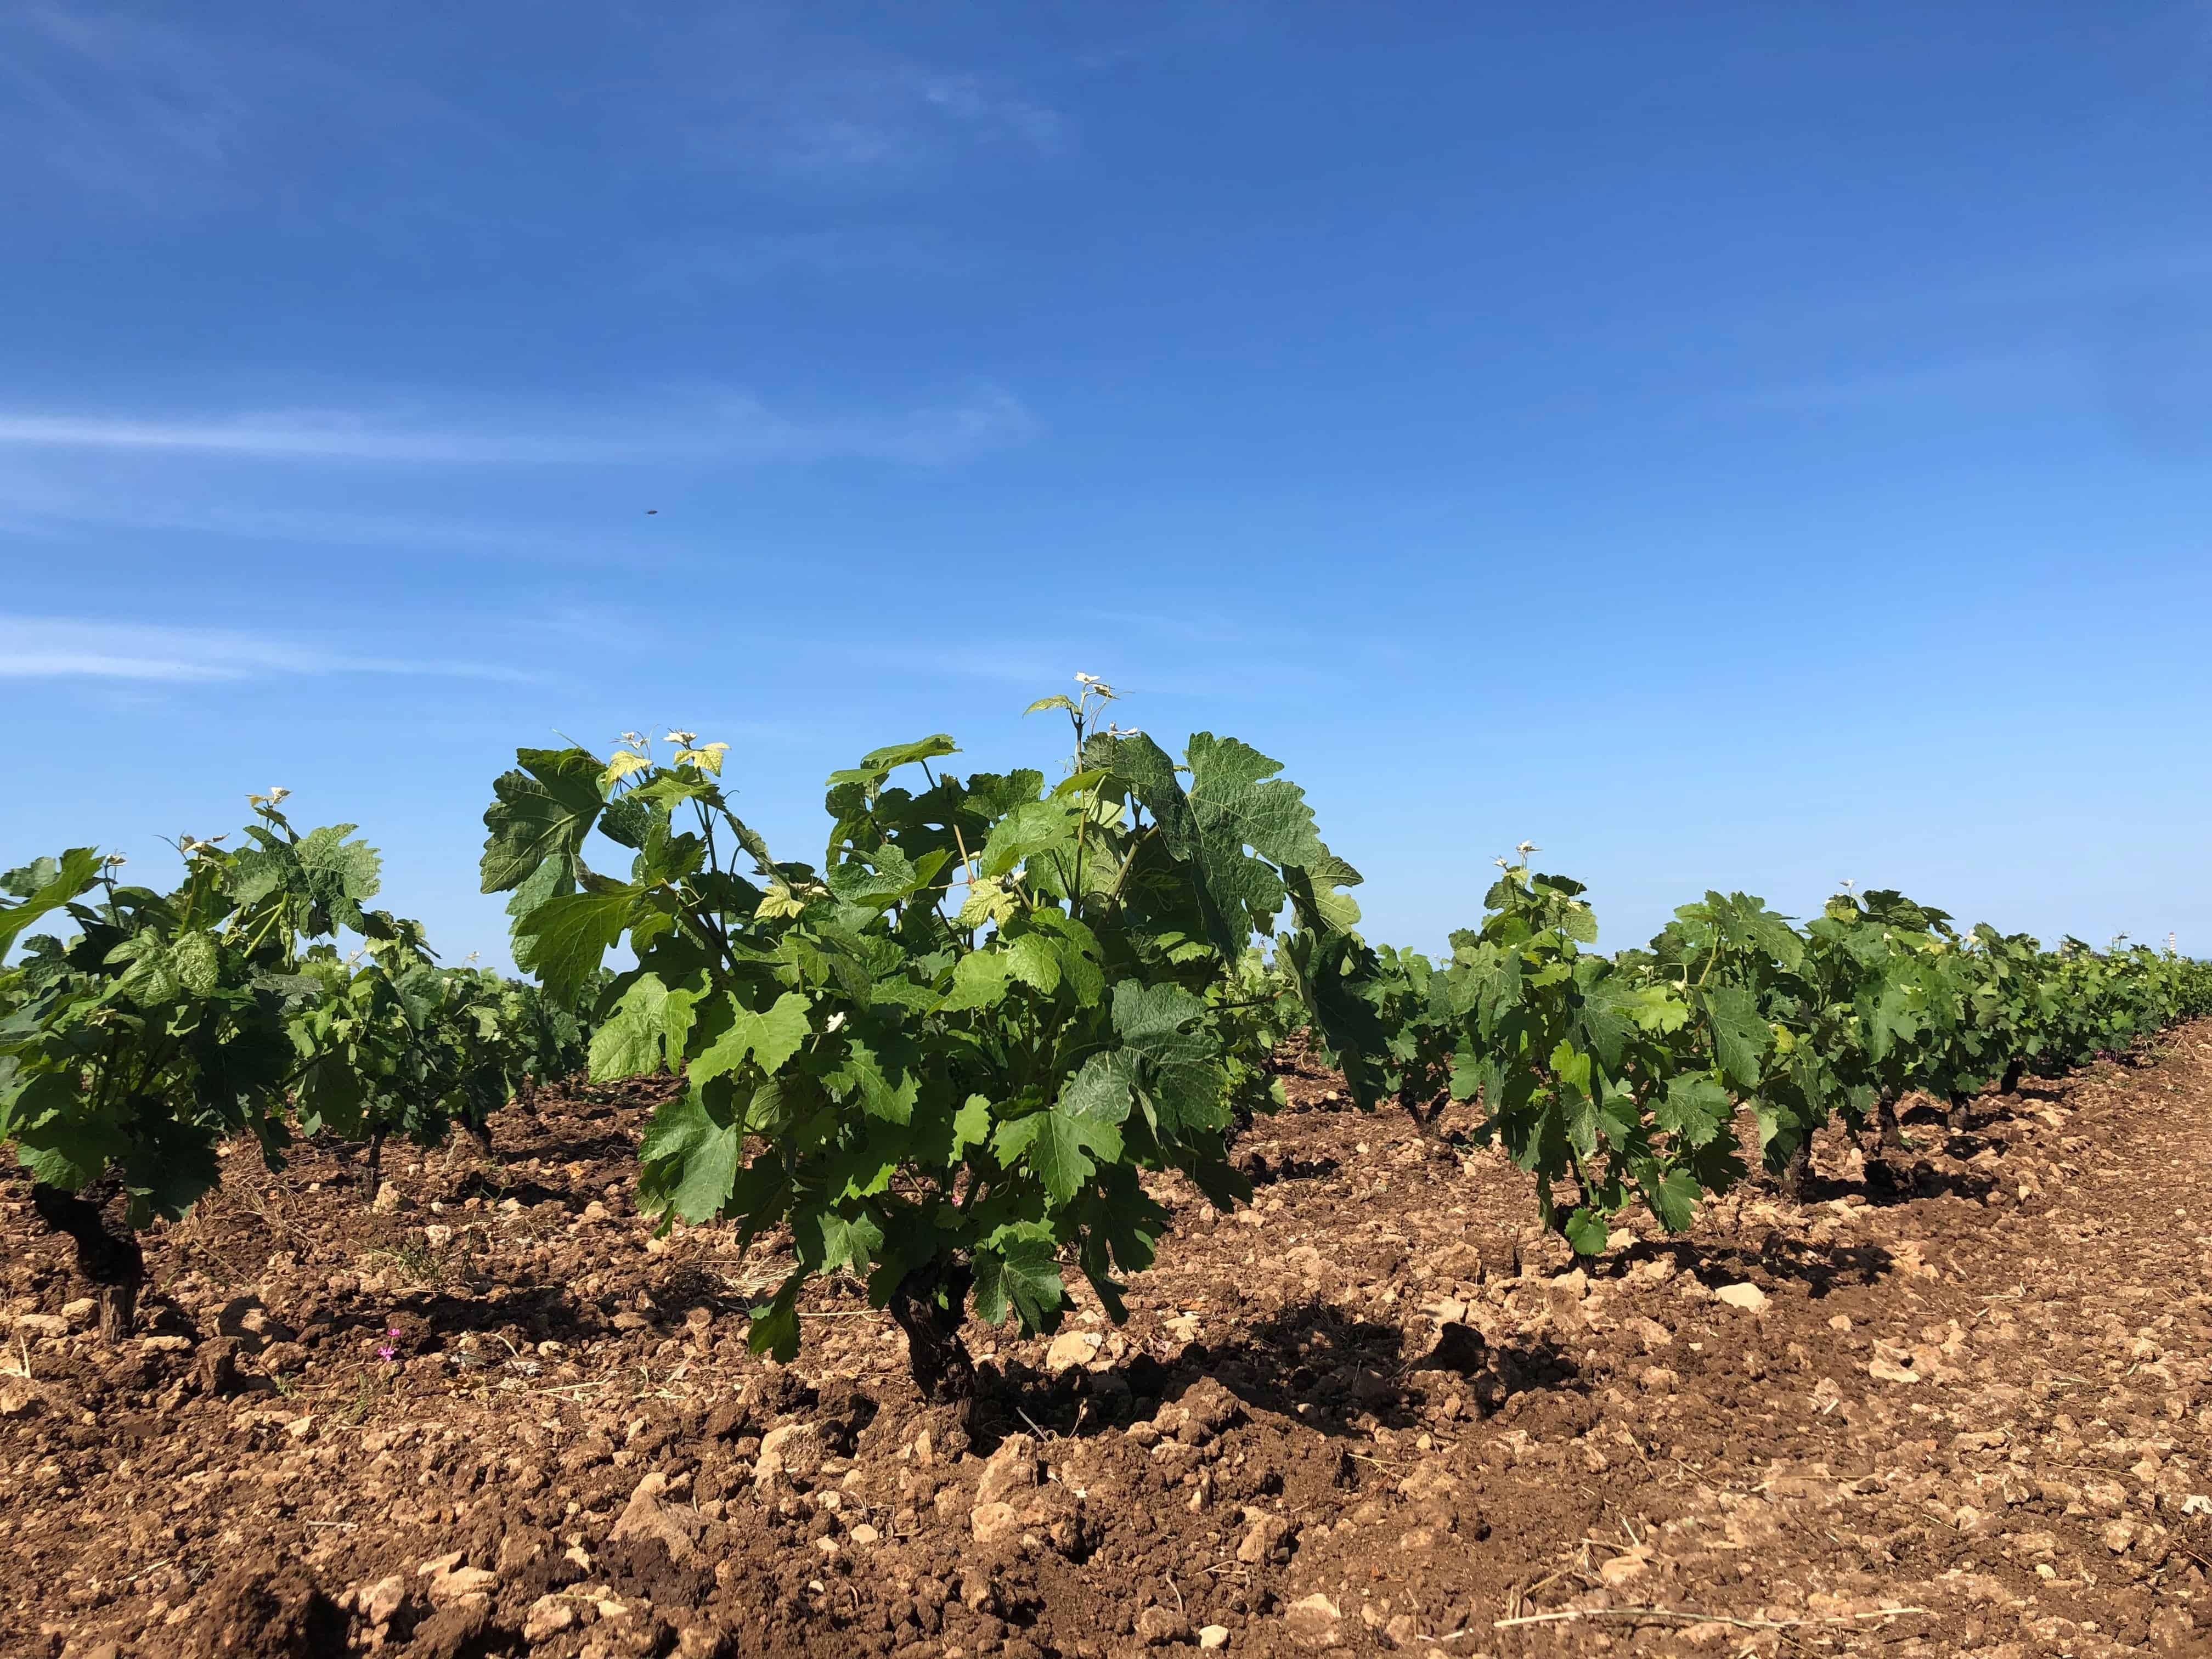 , The Great Dane and his Improbable Vineyard